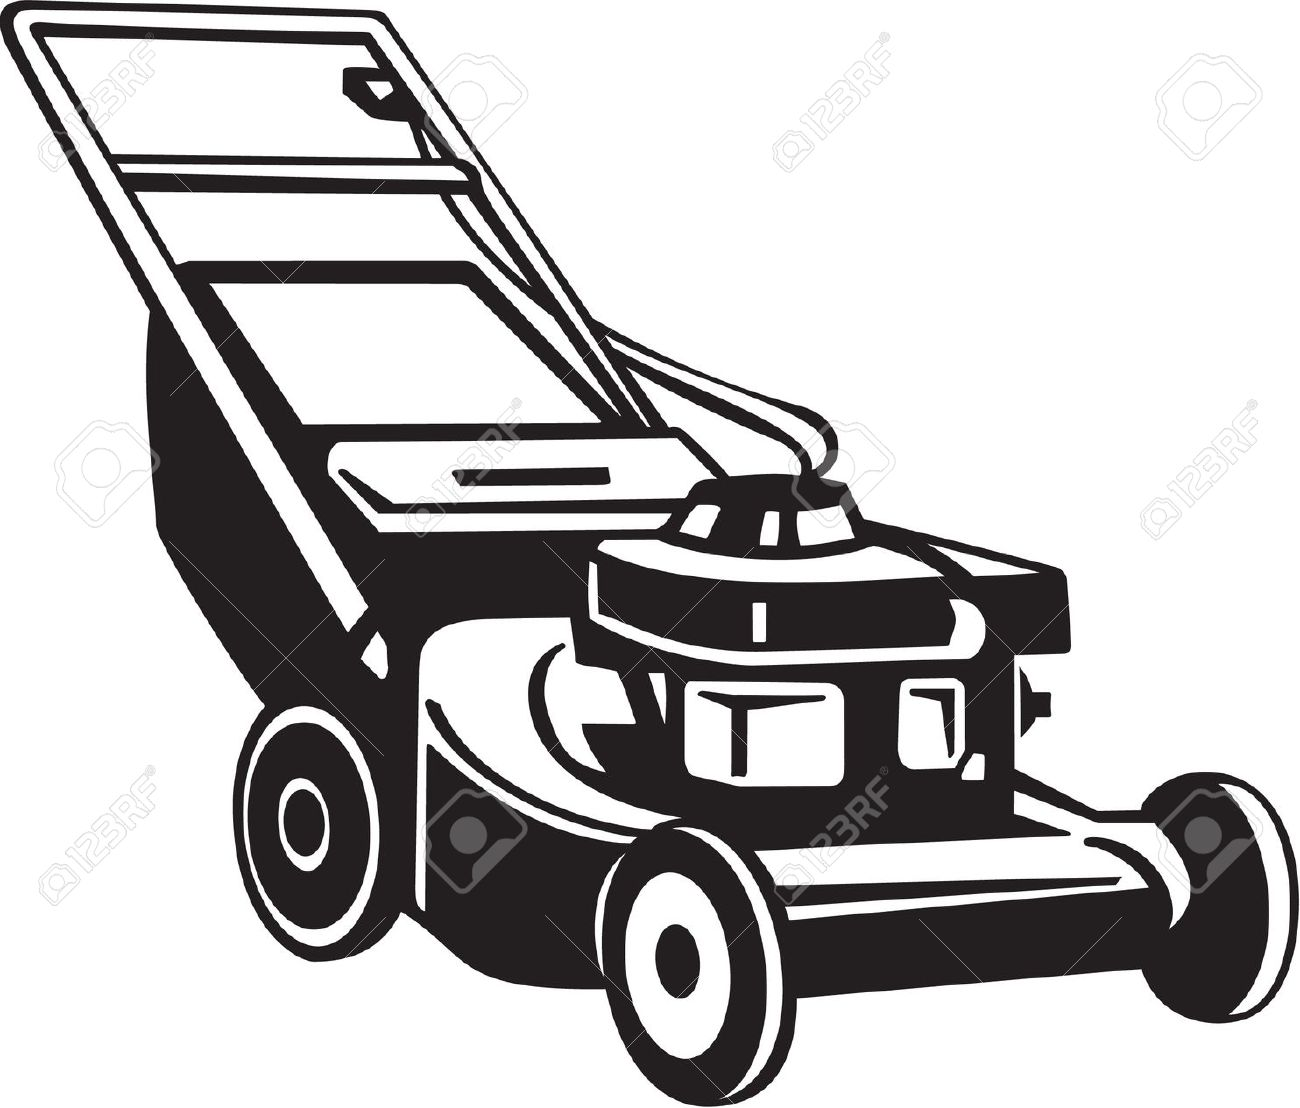 Best Lawn Mower Clipart 15184 Clipartion Com